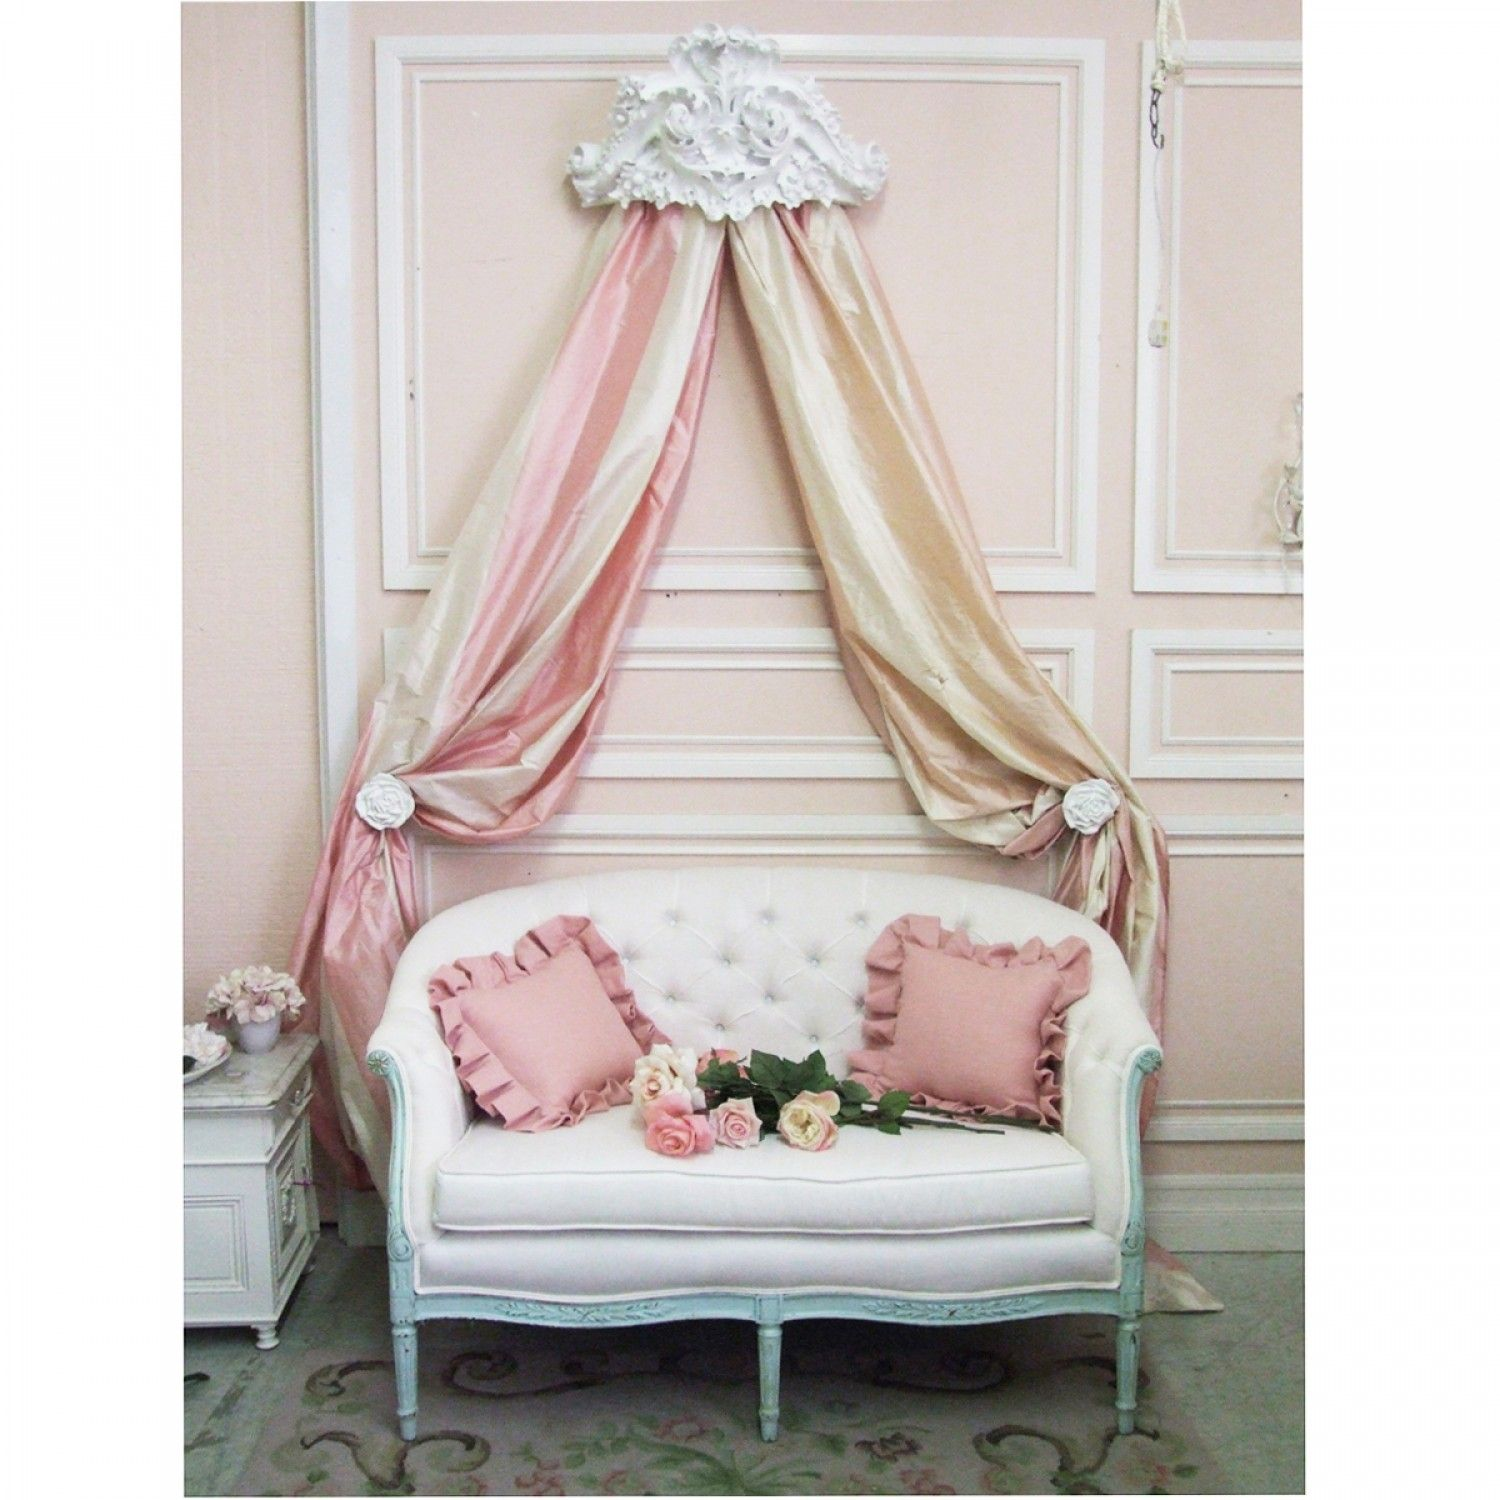 Lille Ornate Bed Crown $32130 #Thebellacottage #Shabbychic